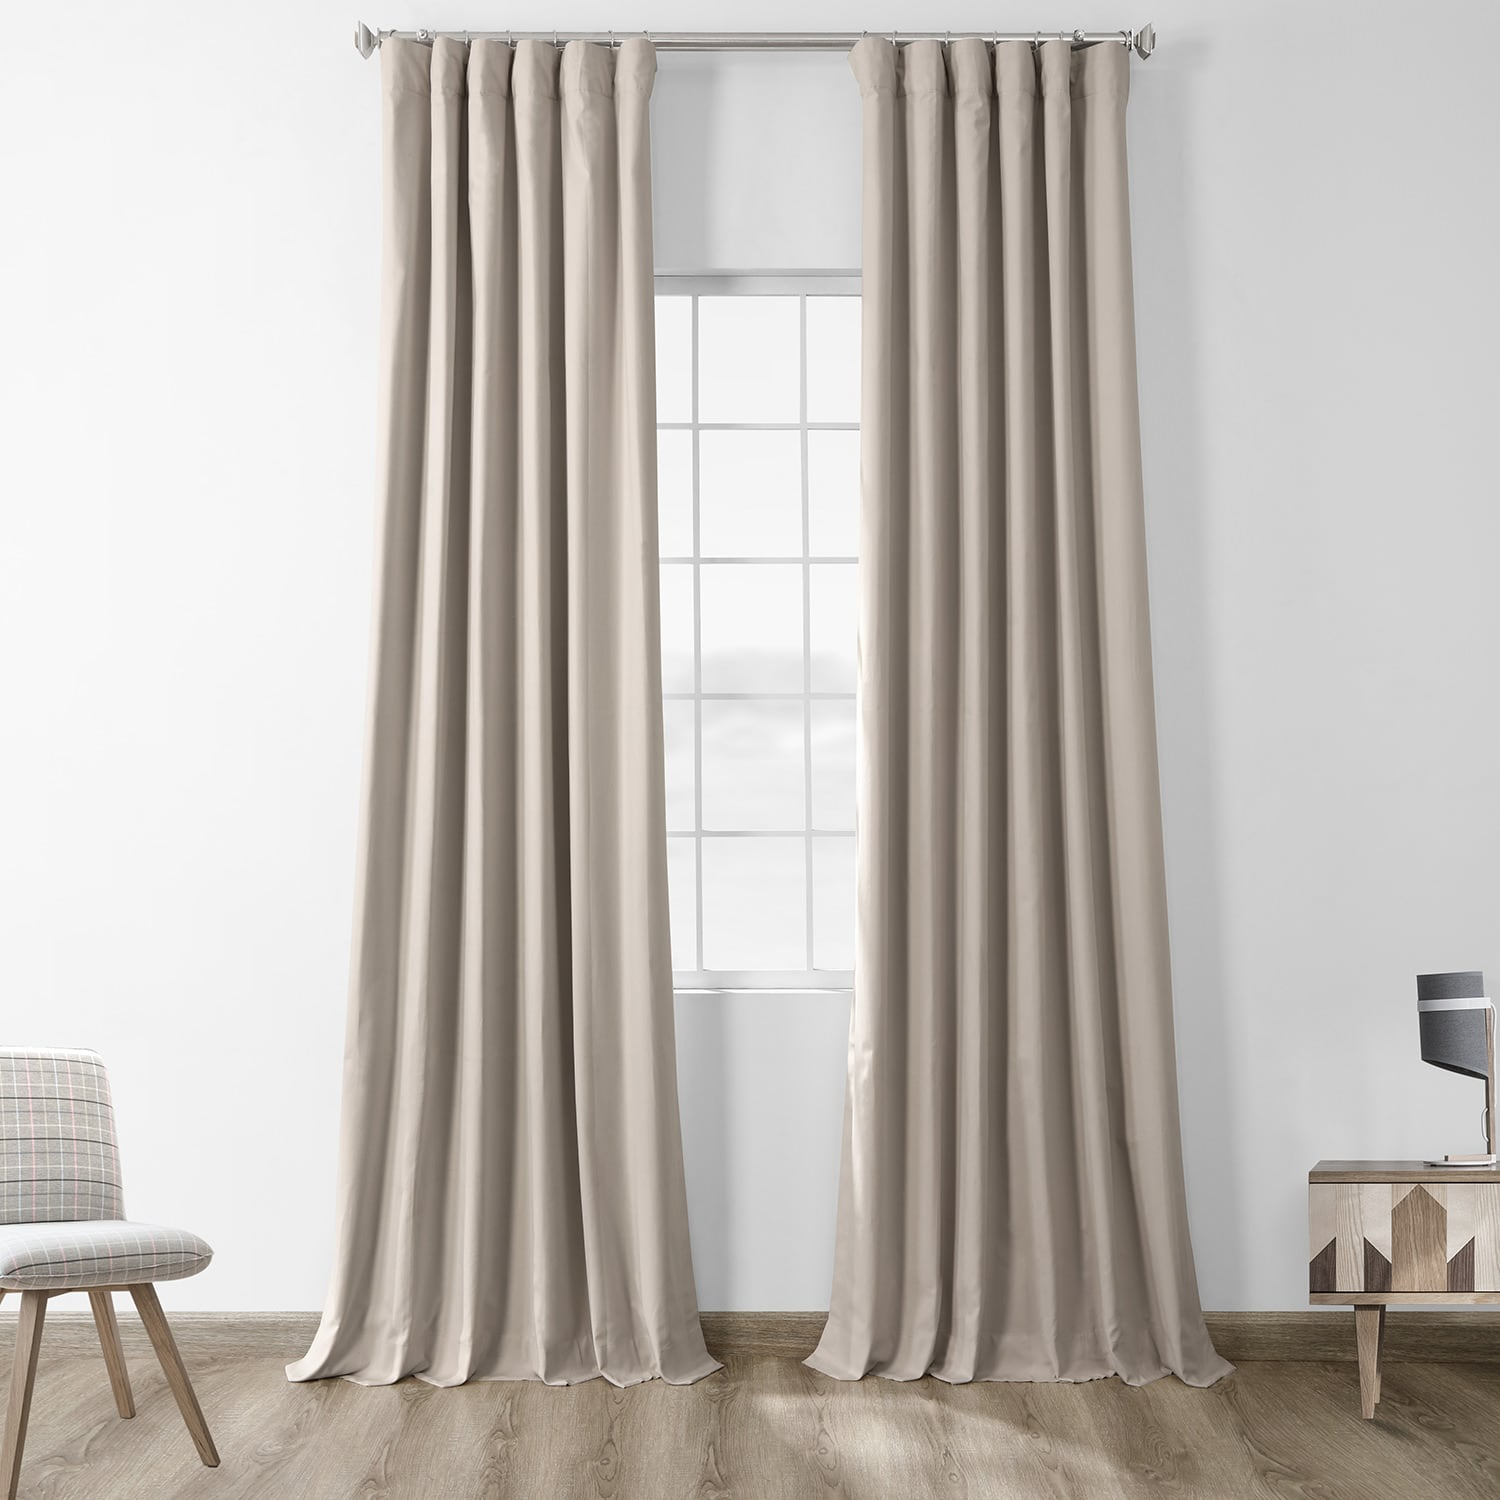 36 Inch Room Darkening Curtains Hazelwood Beige Solid Cotton Blackout Curtain